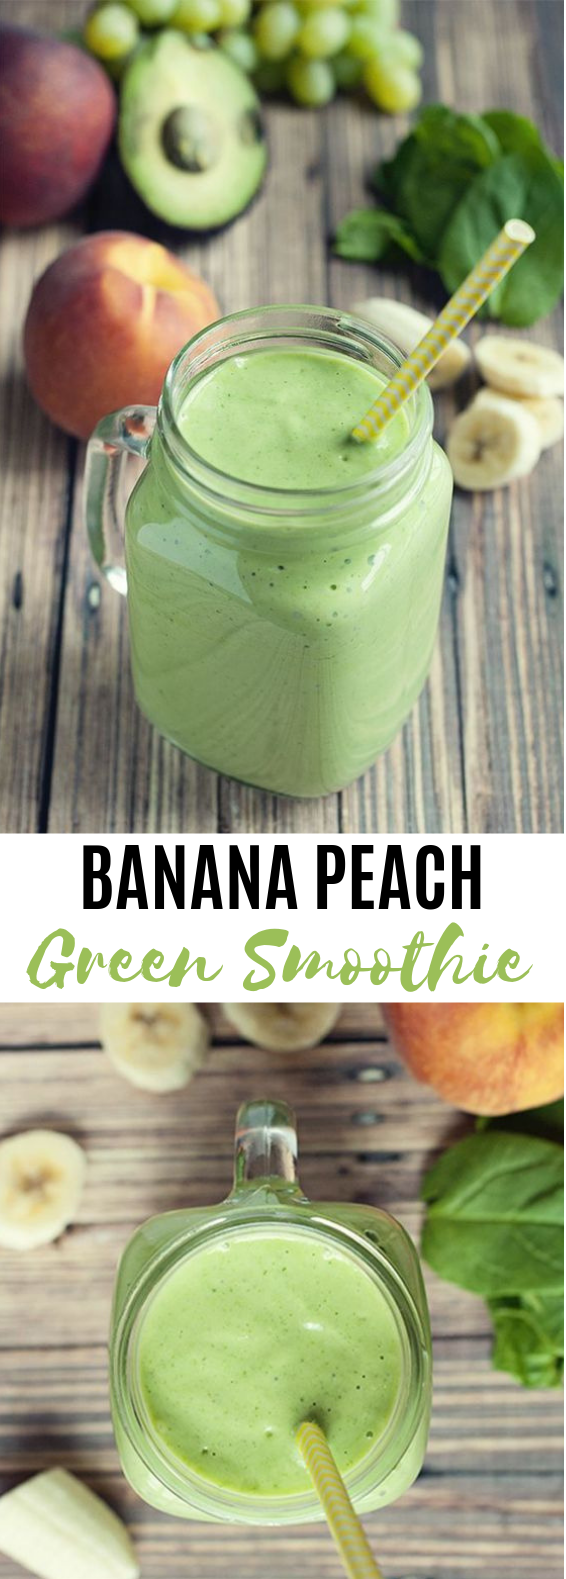 Banana Peach Green Smoothie #healthy #breakfast